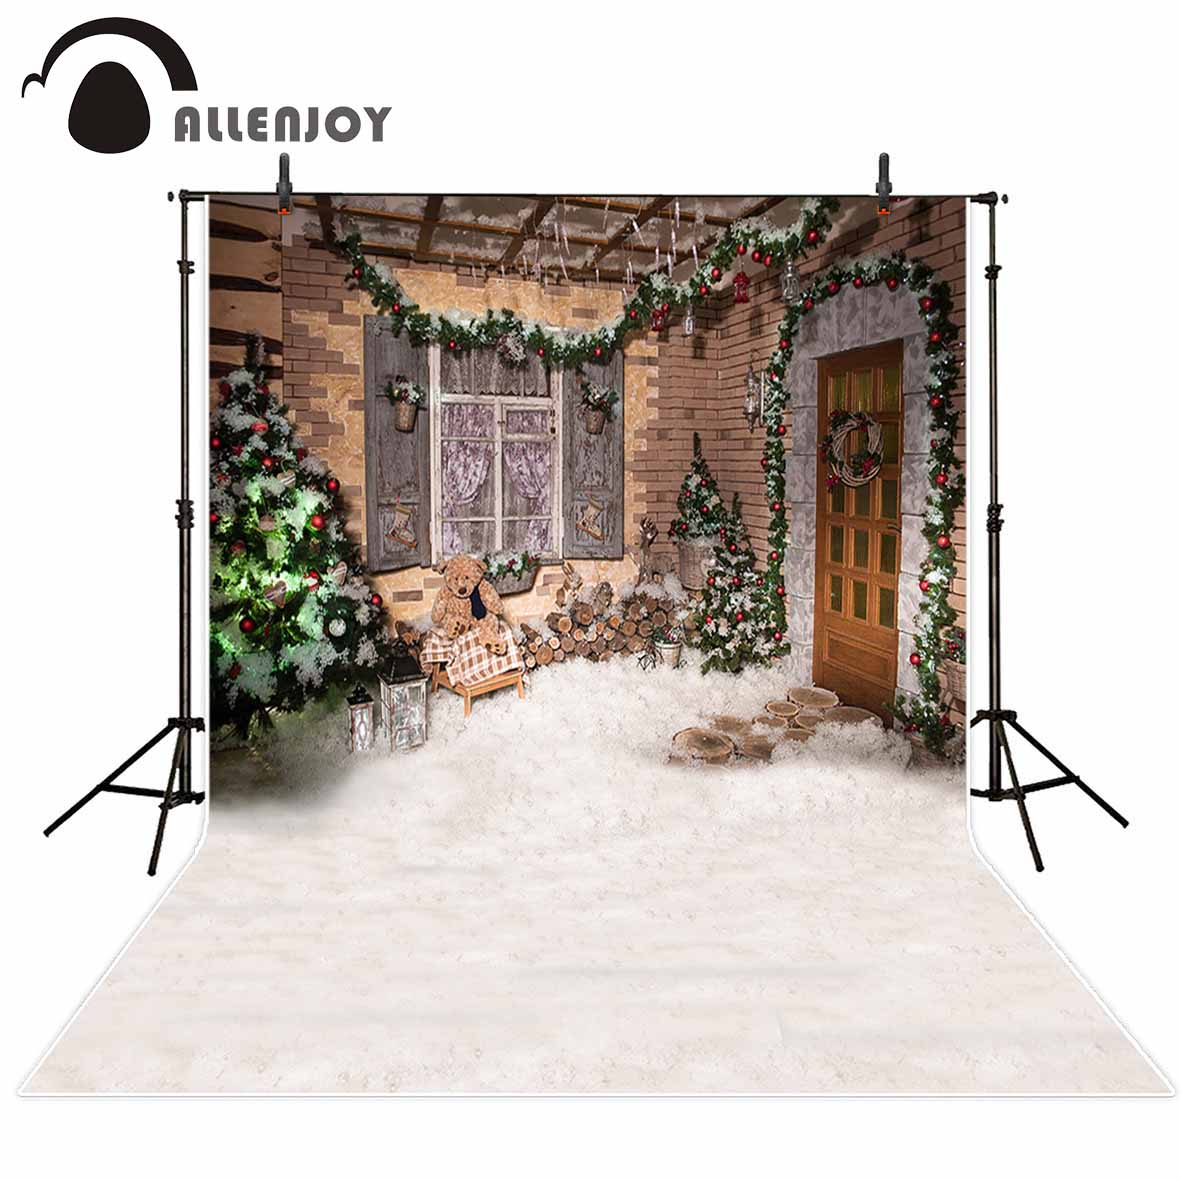 Allenjoy photography backdrop Snow winter house Christmas tree party children new background photocall customize photo printed allenjoy background for photo studio winter forest snow mountain painting backdrop printed photocall portrait shooting